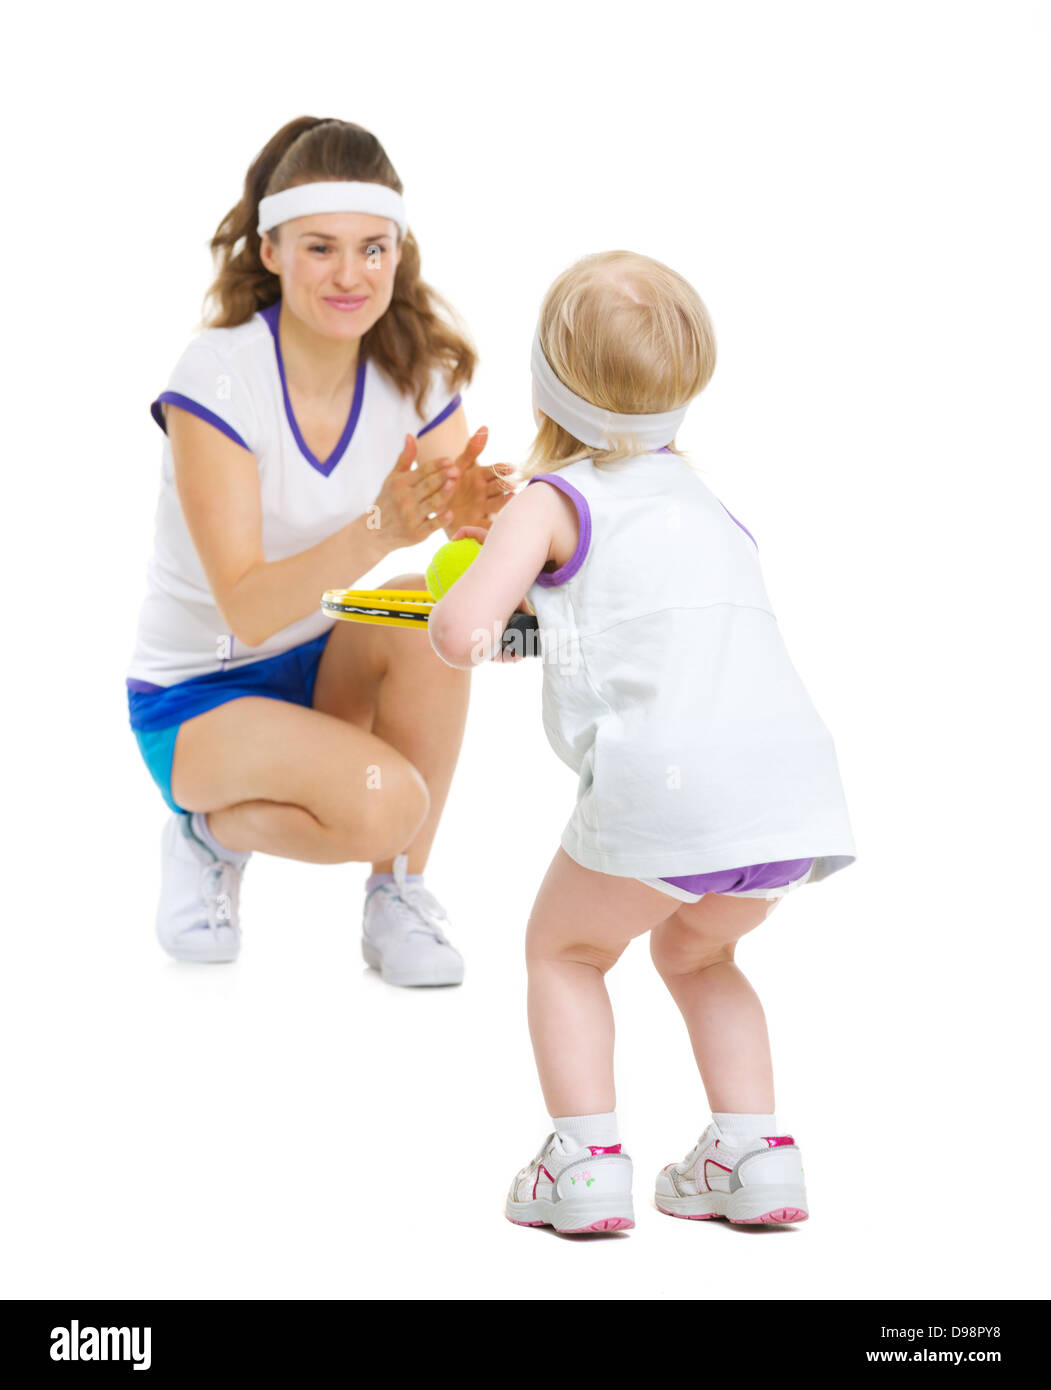 Mother and baby in tennis clothes playing tennis - Stock Image